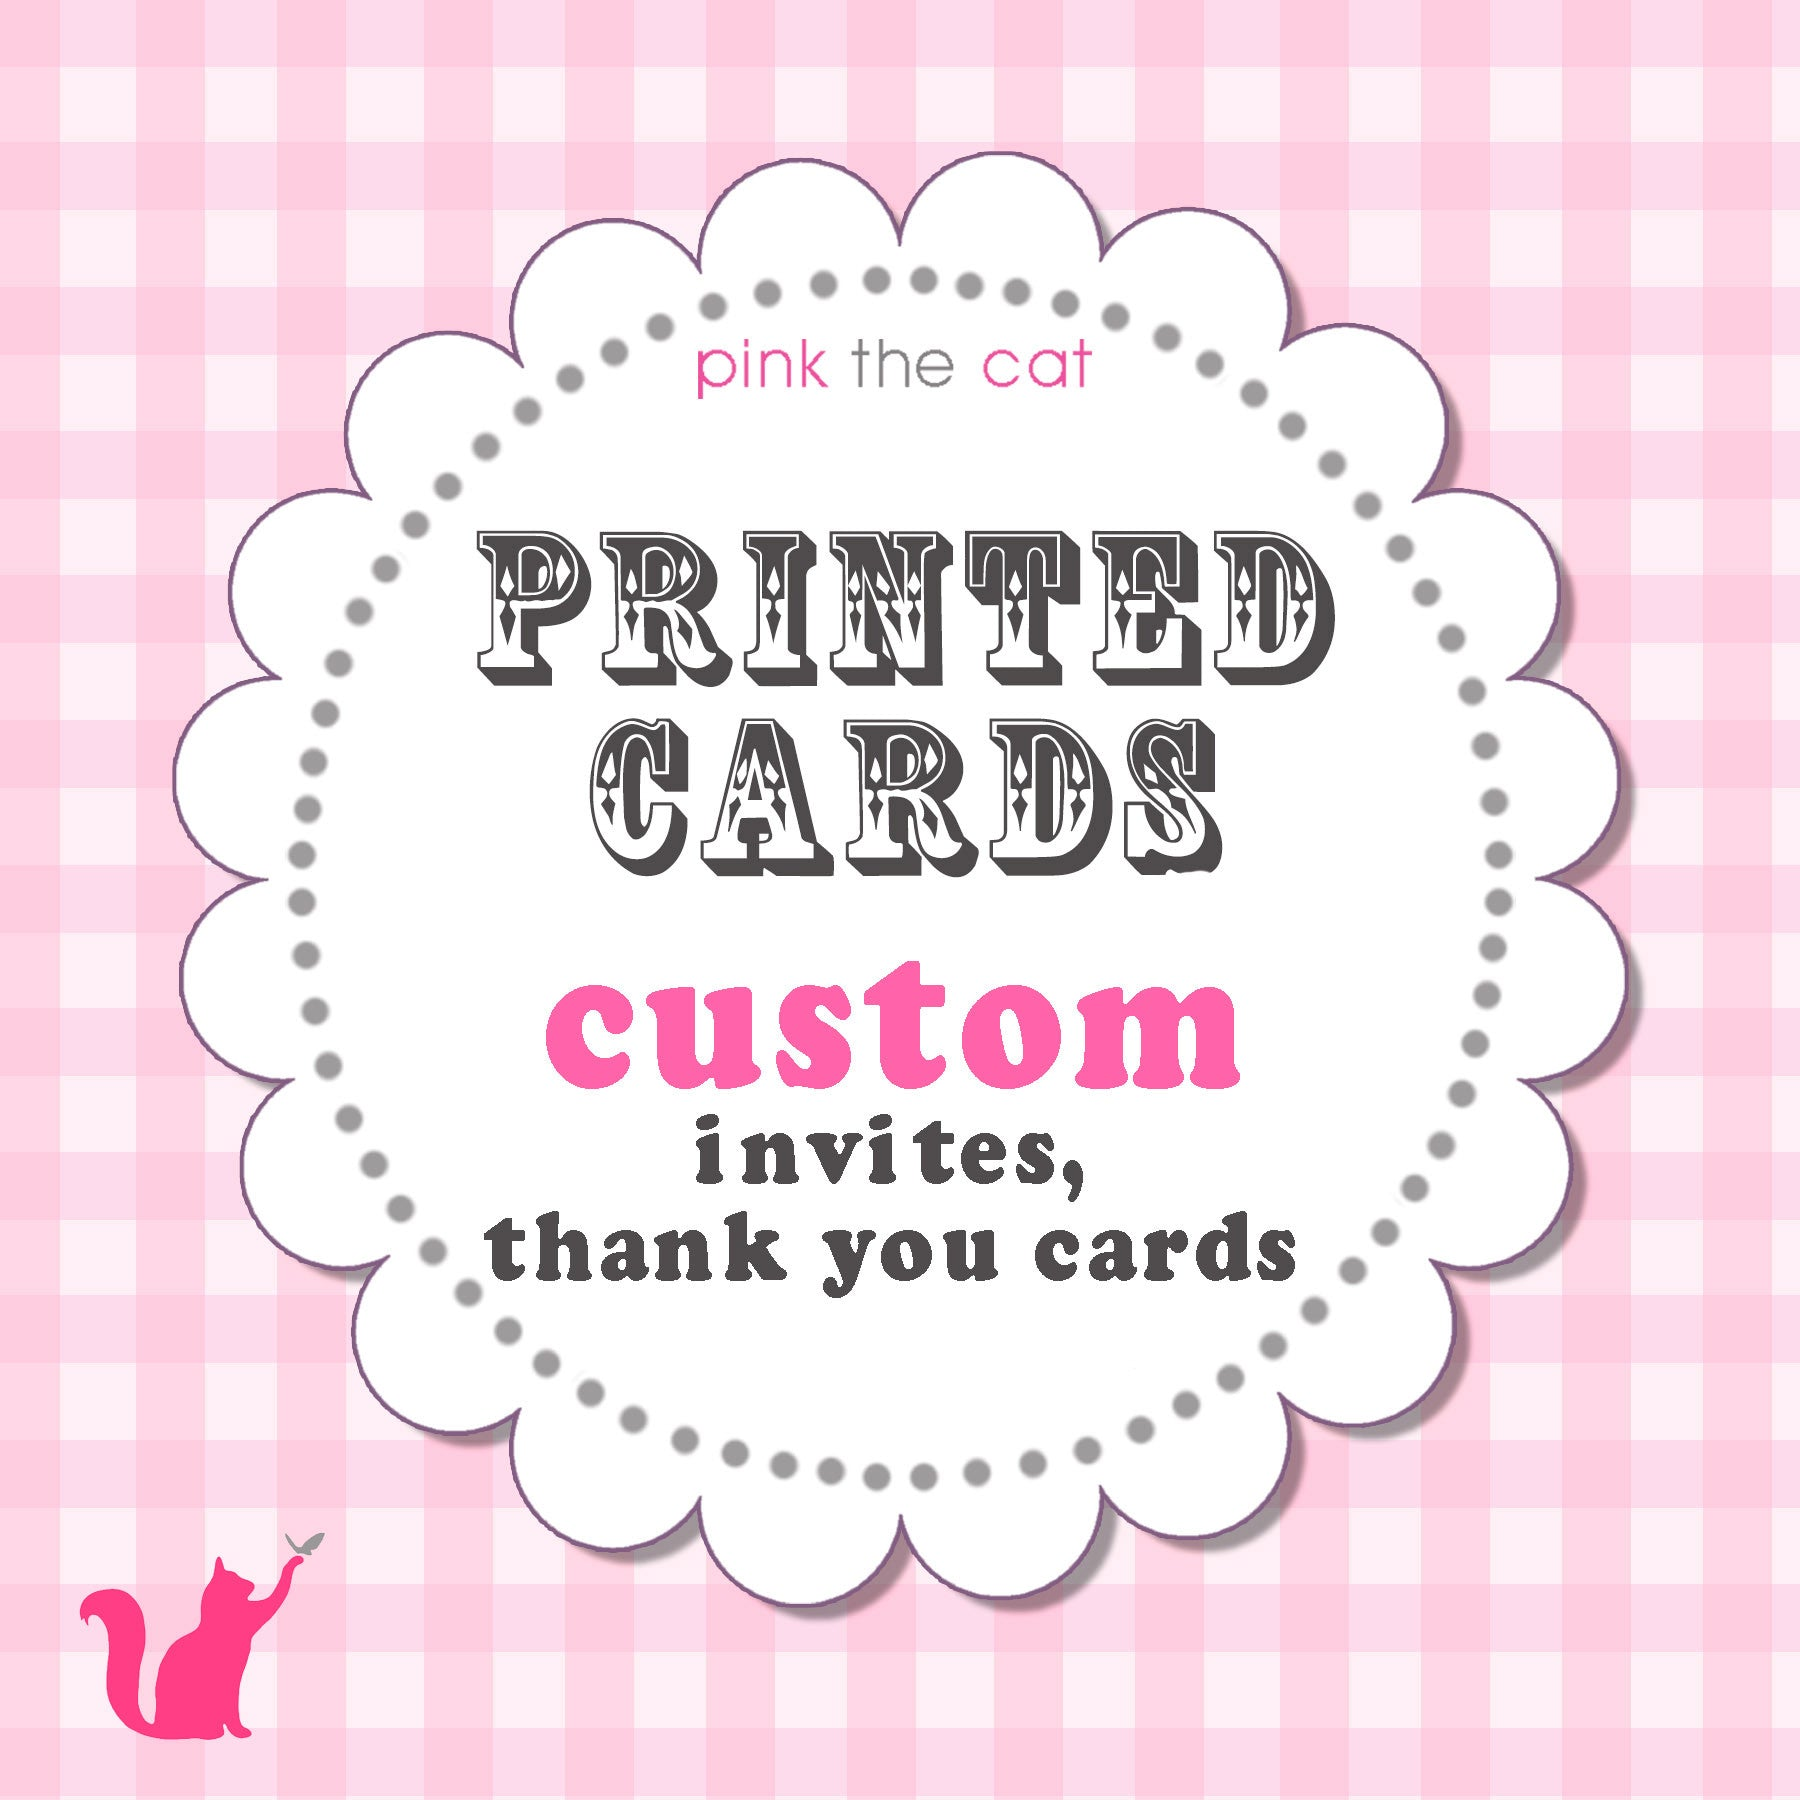 Printed Invitations Or Thank You Cards Card Stock Envelopes Pink